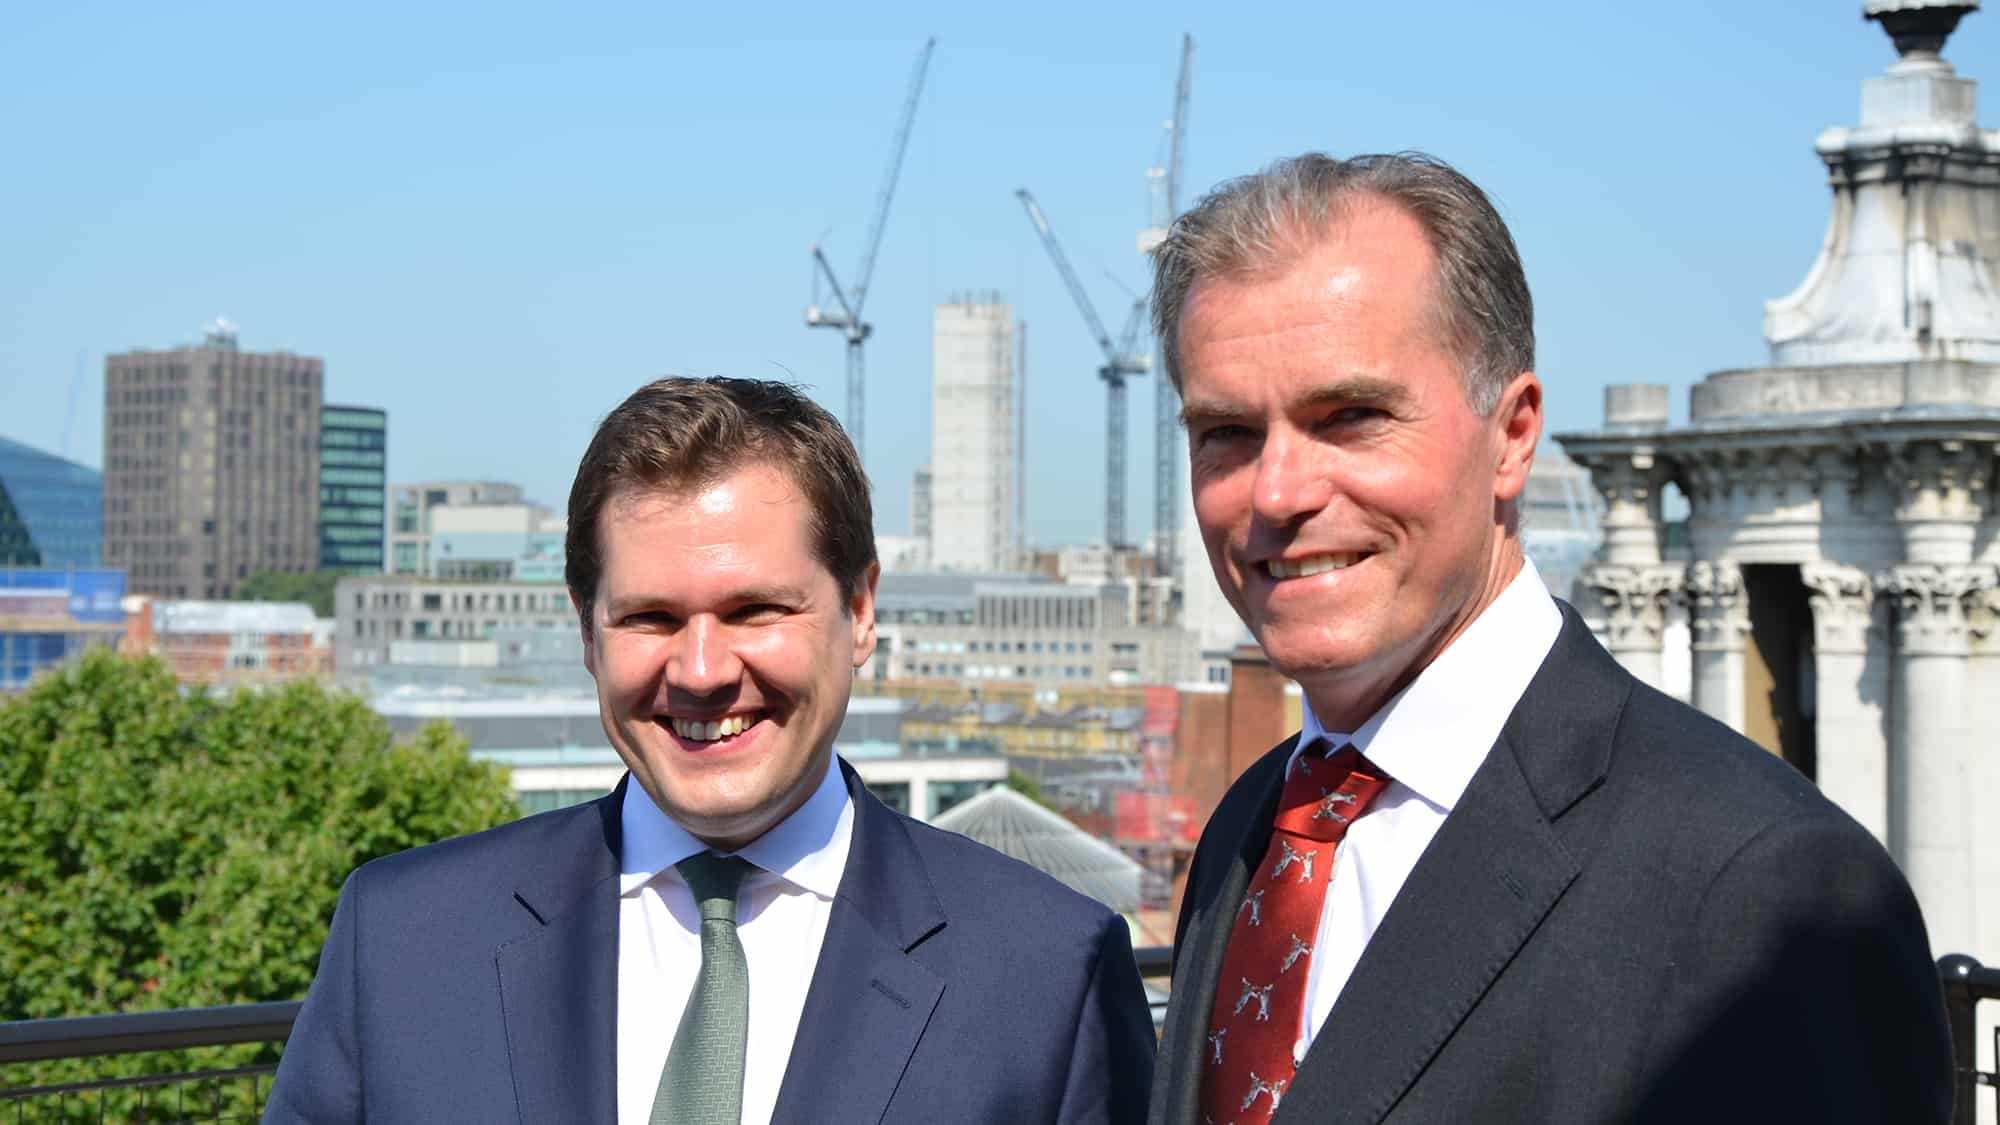 James Jamieson and Robert Jenrick MP